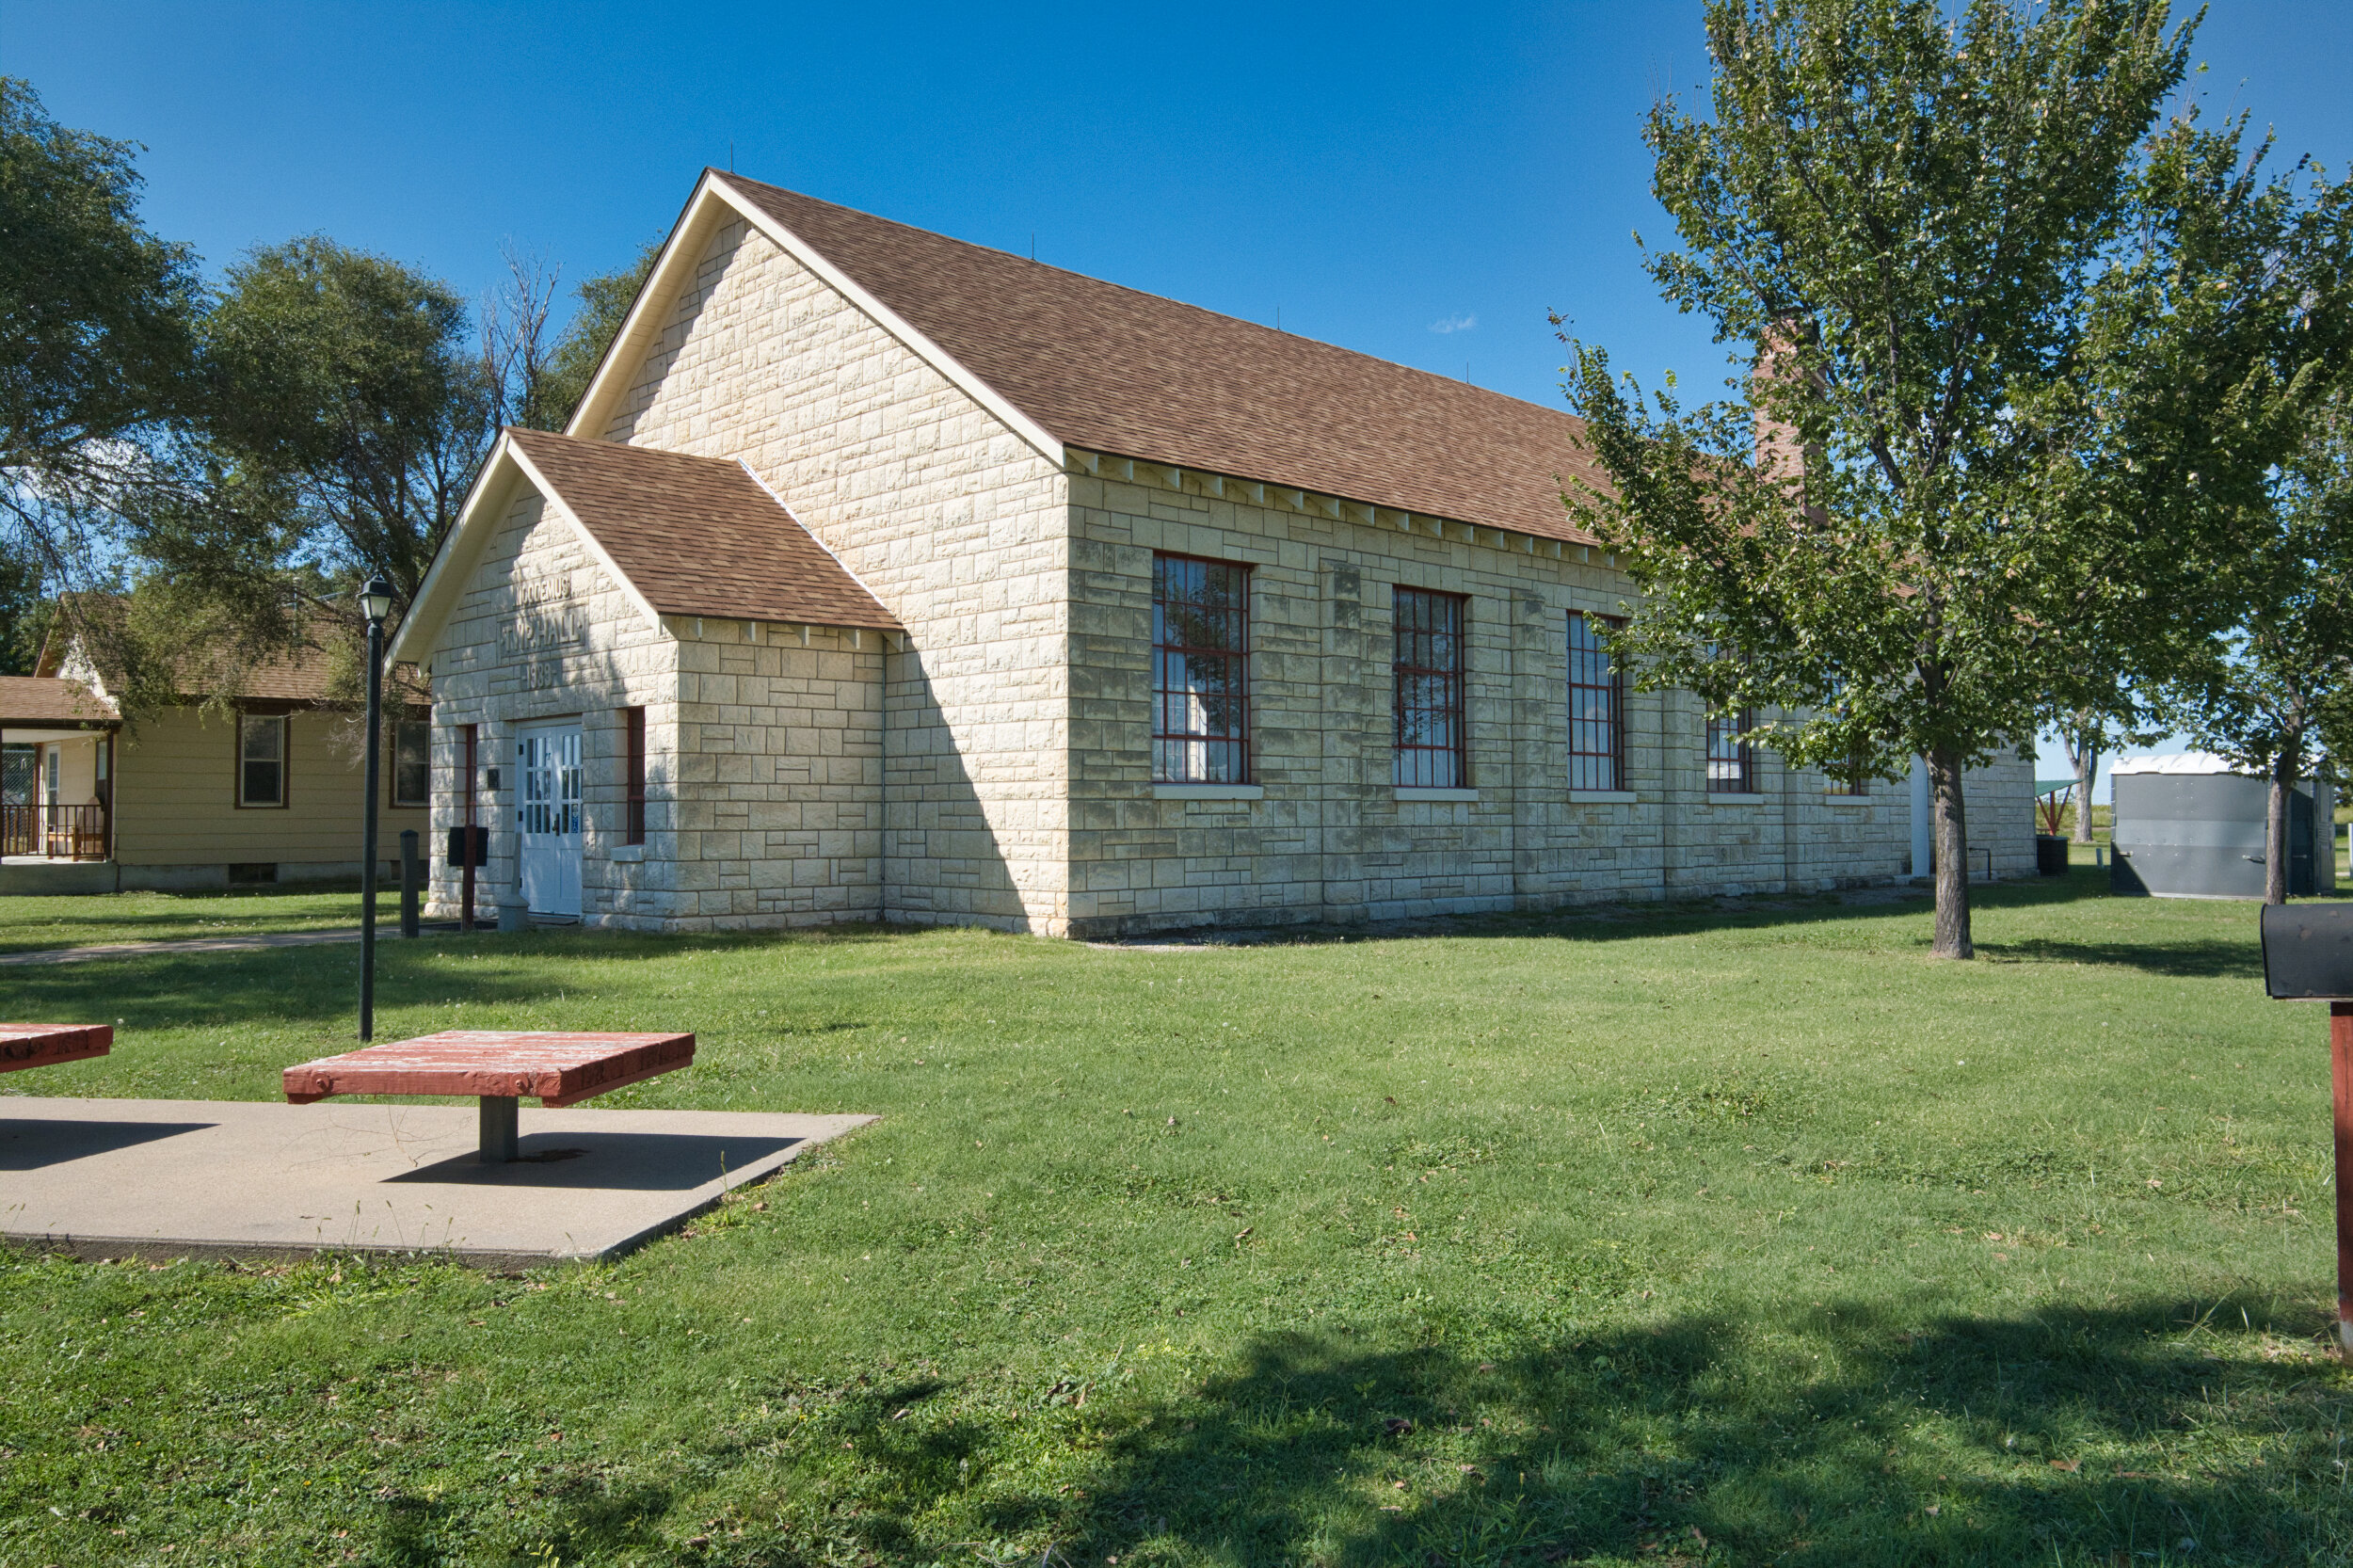 This is the current VC but was built by the community in the 30's for their gatherings. Beautiful work.